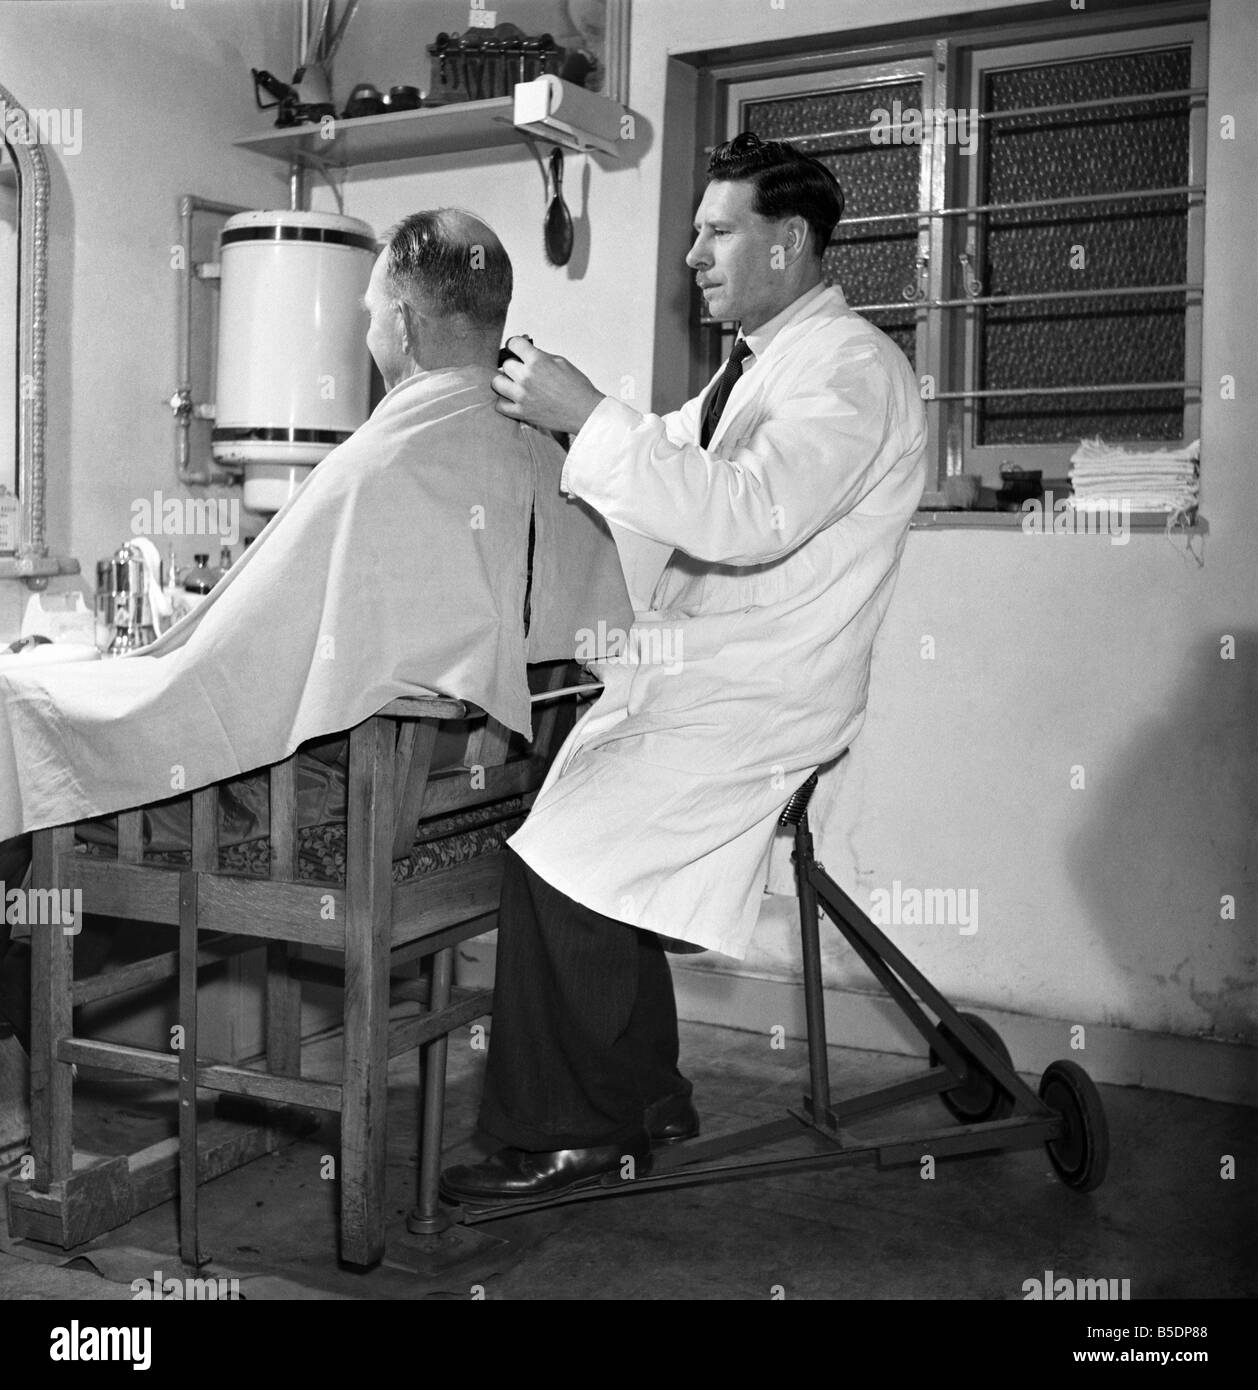 mobile barber chair hanging inventions 1960 stock photos